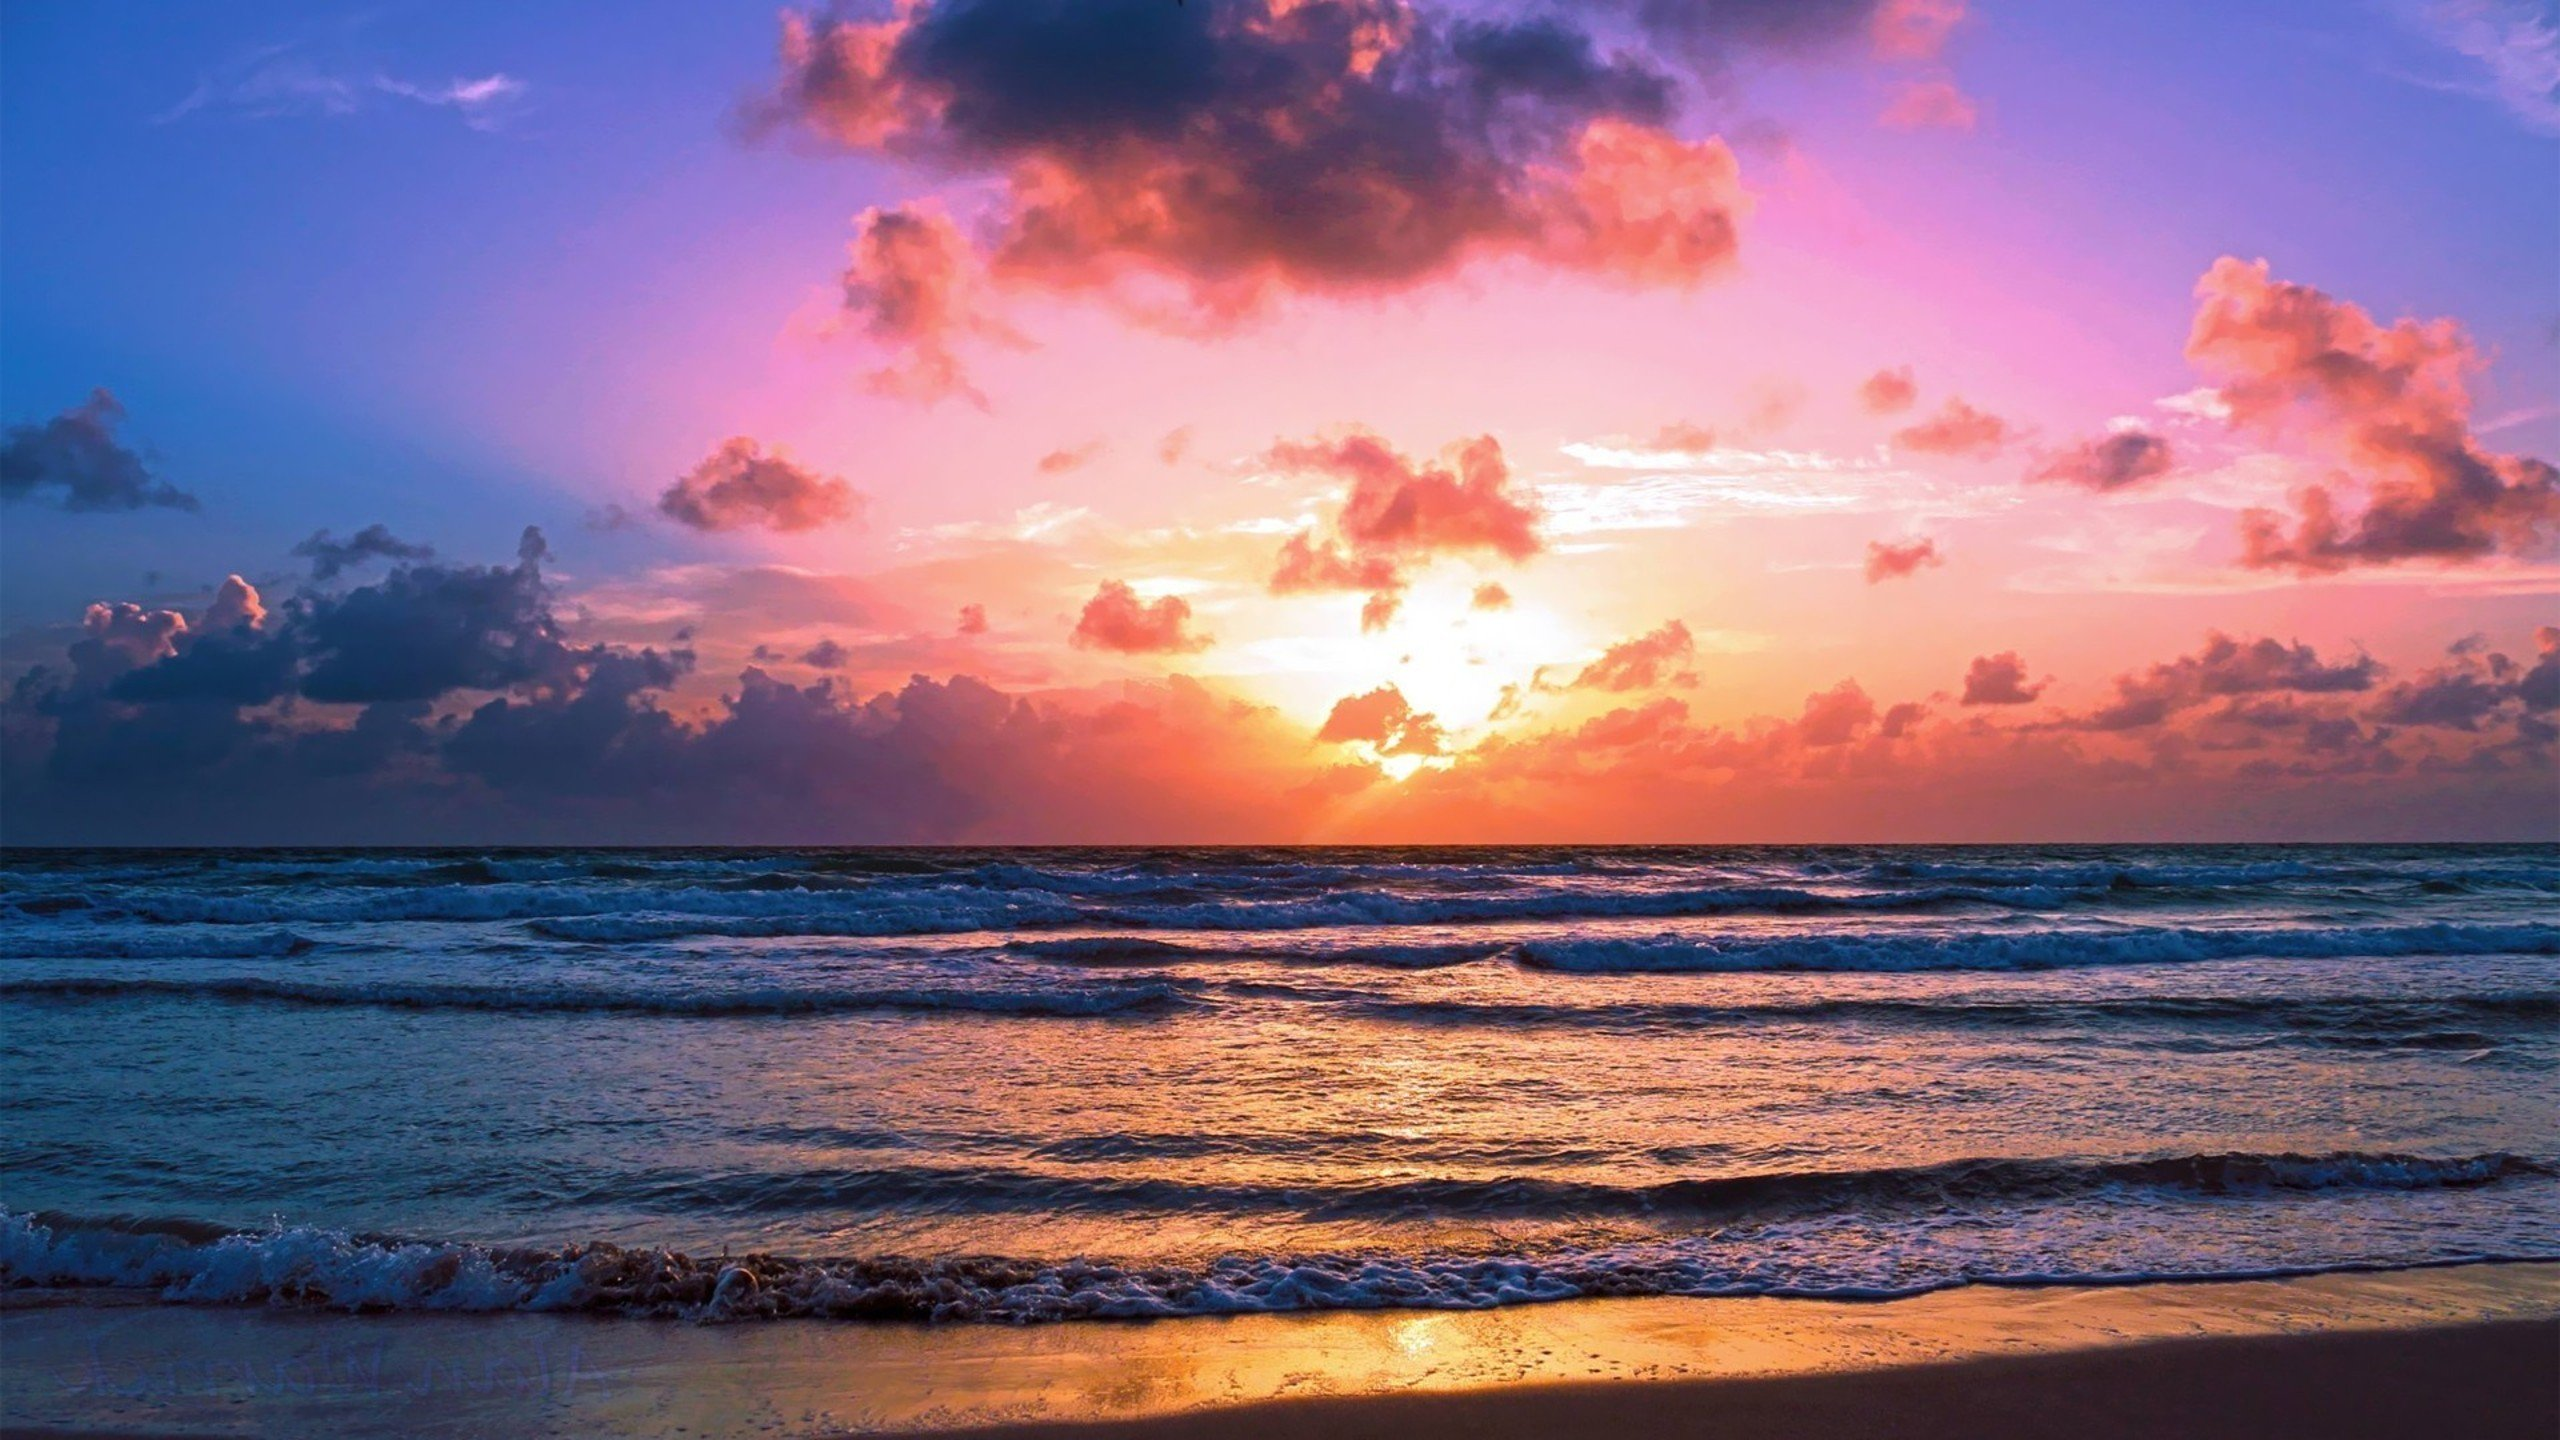 Miami Beach Sunset Wallpaper 7305 Wallpaper 2560x1440